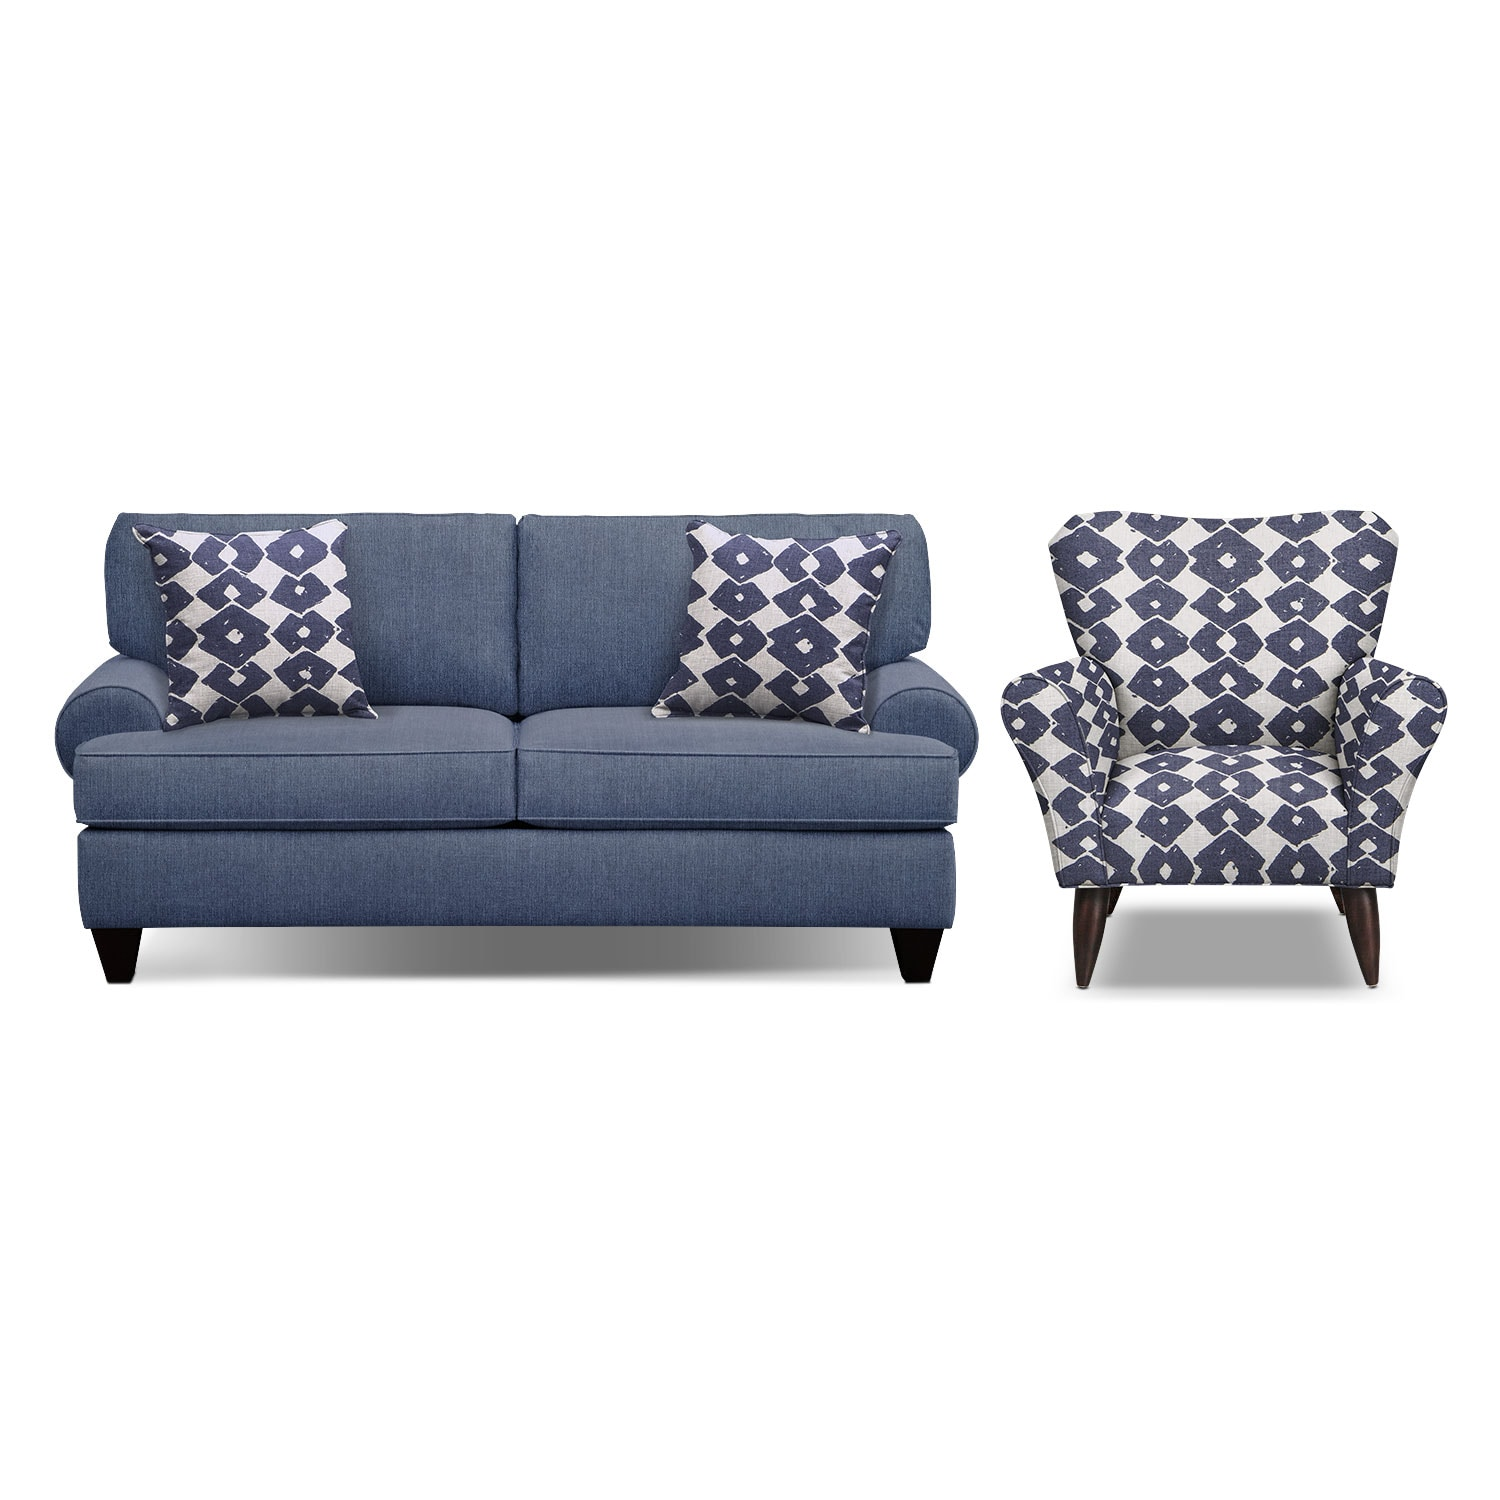 "Living Room Furniture - Bailey Blue 79"" Sofa and Accent Chair Set"